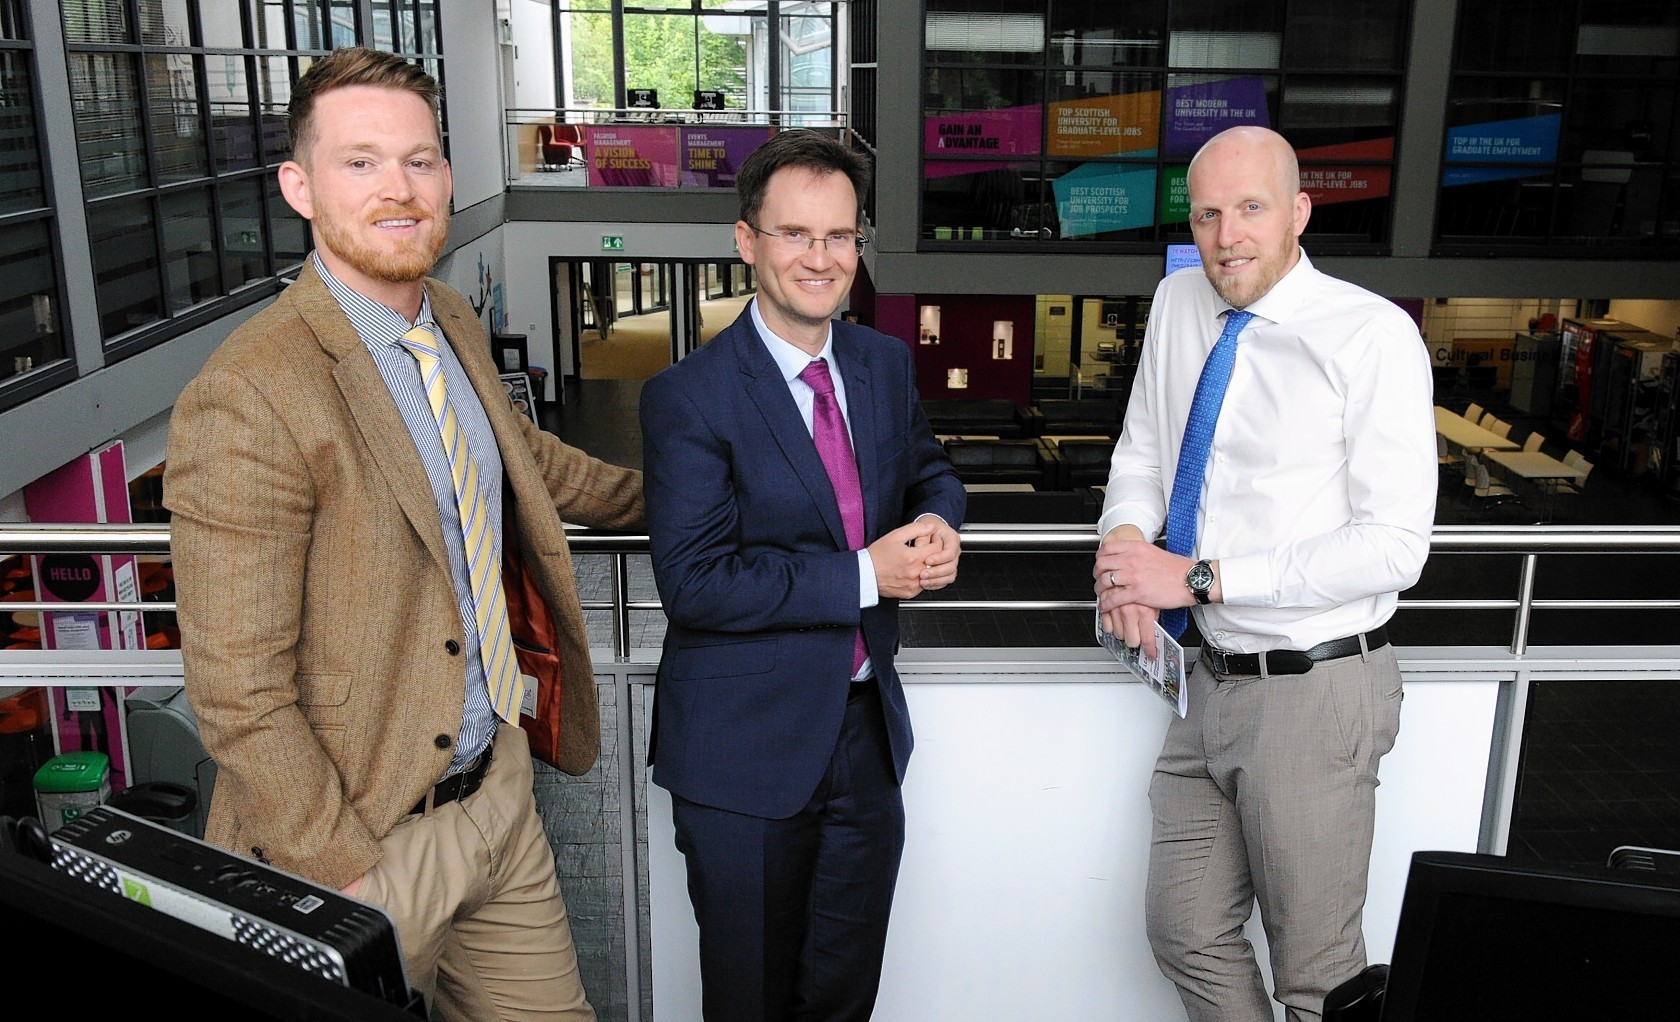 Dr Ian Broadbent, senior Lecturer and MBA Director with Robert Gordon Univeristy (centre) with students Kris Lindahl (left) and Ross Bremner (right). See business story MBA Oil and Gas management. Picture by COLIN RENNIE  June 8, 2017.